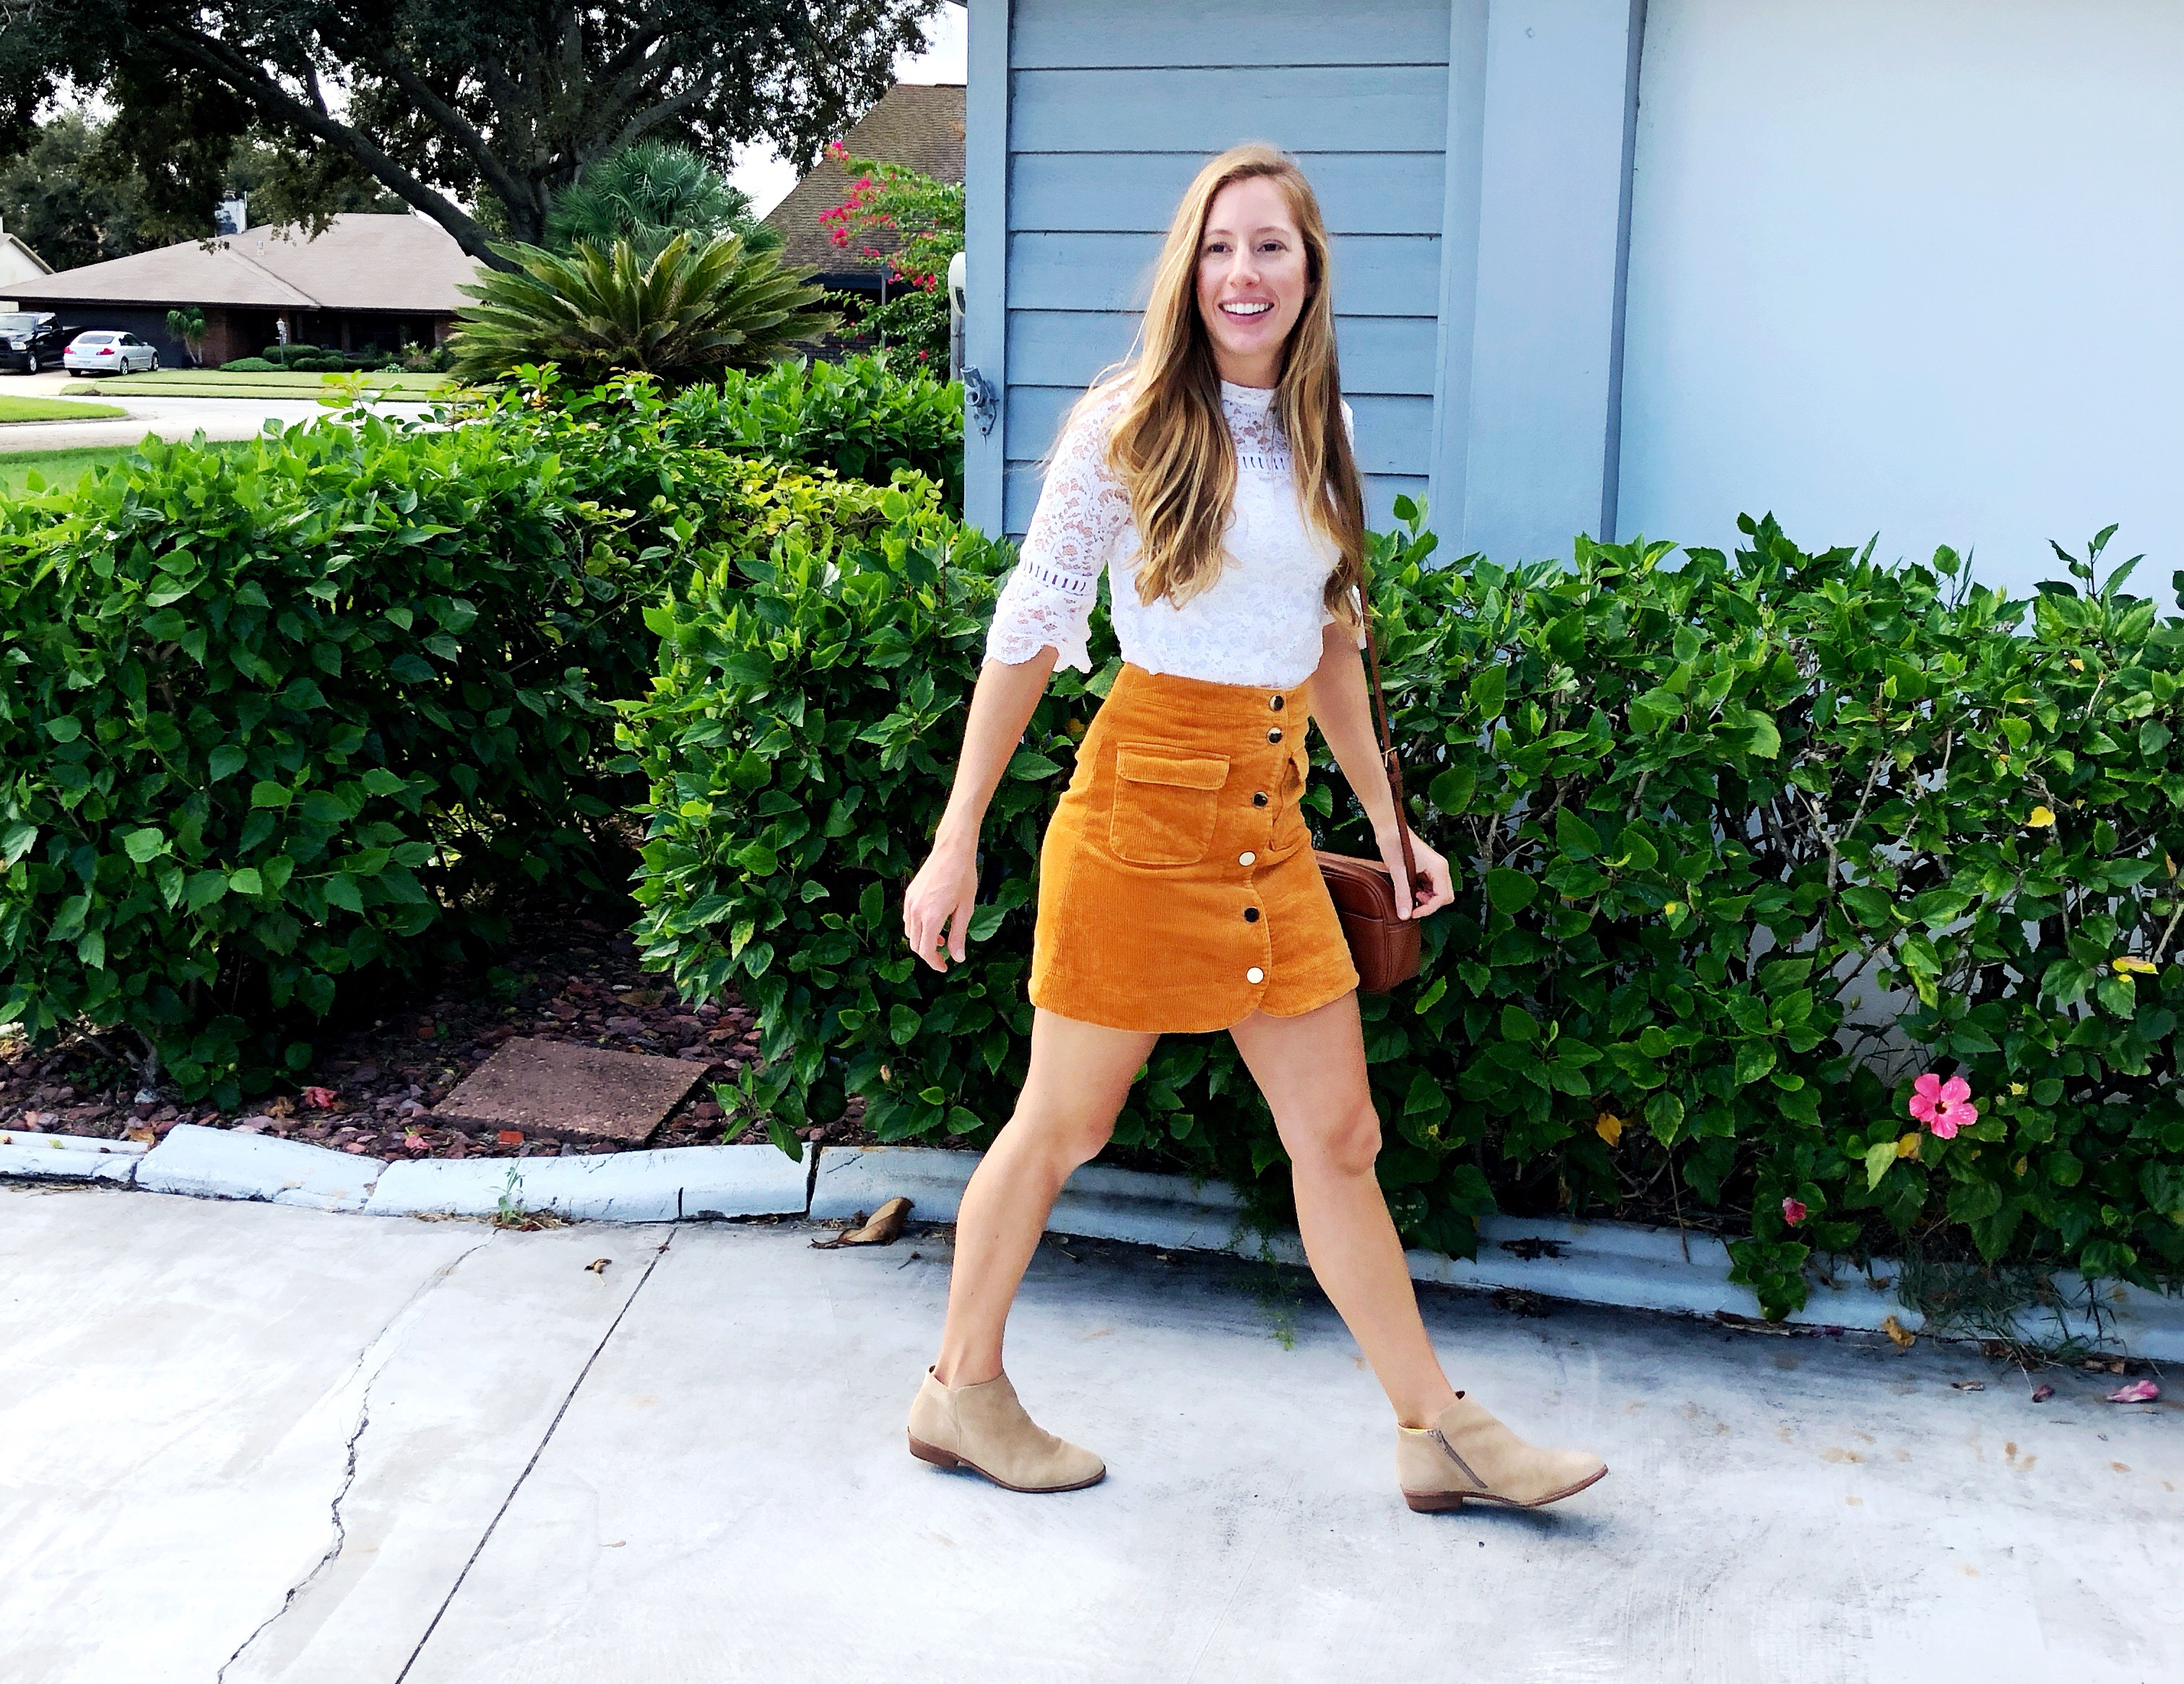 How to Style a Lace Top for Fall | How to Wear a Lace Top for Fall | Suede Skirt | Corduroy Skirt | How to Dress for Fall in Warm Weather - Sunshine Style